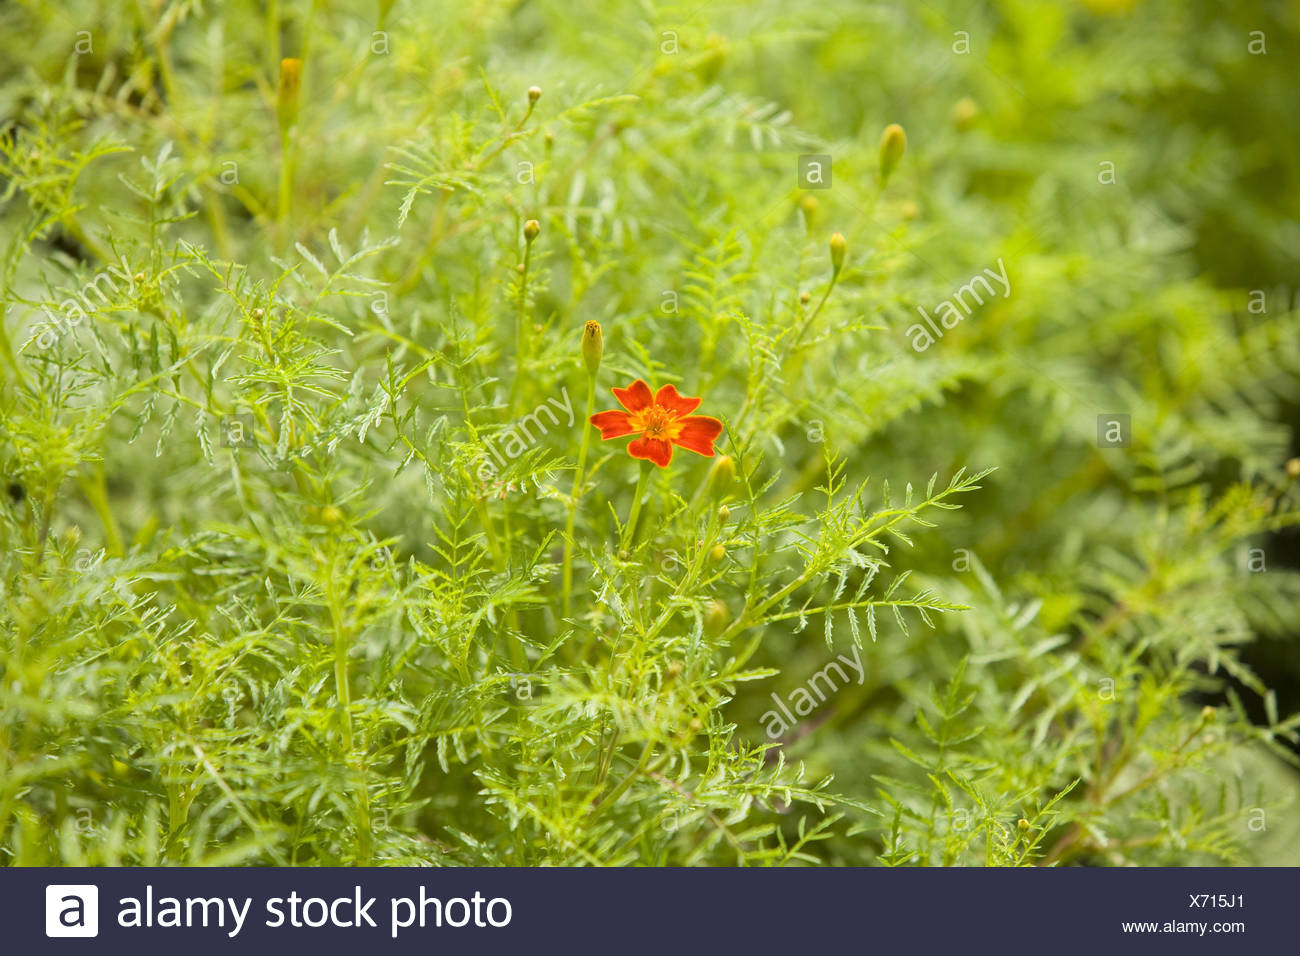 French marigold  blossom  red  cottage gardens  plants  flowers     French marigold  blossom  red  cottage gardens  plants  flowers  French  marigold  Sammetblume  dead person s flower  composites  summer flowers   nature